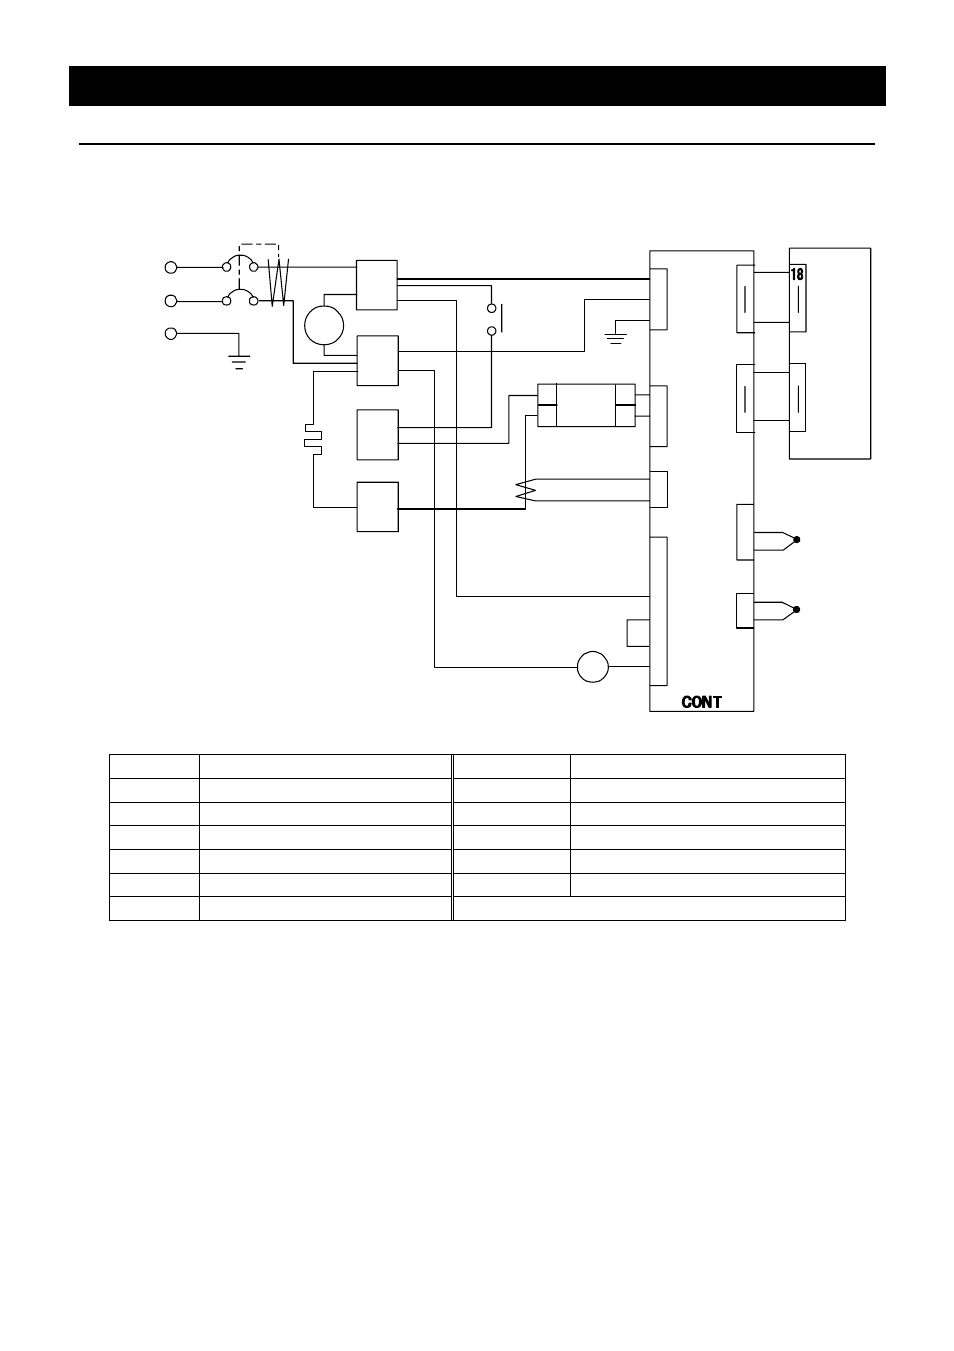 Wiring Diagram Pio Elb Ac100v Hth2 Th1 Yamato Scientific Dkn 912 Basic Current Transformer Constant Temperature Drying Oven User Manual Page 44 50